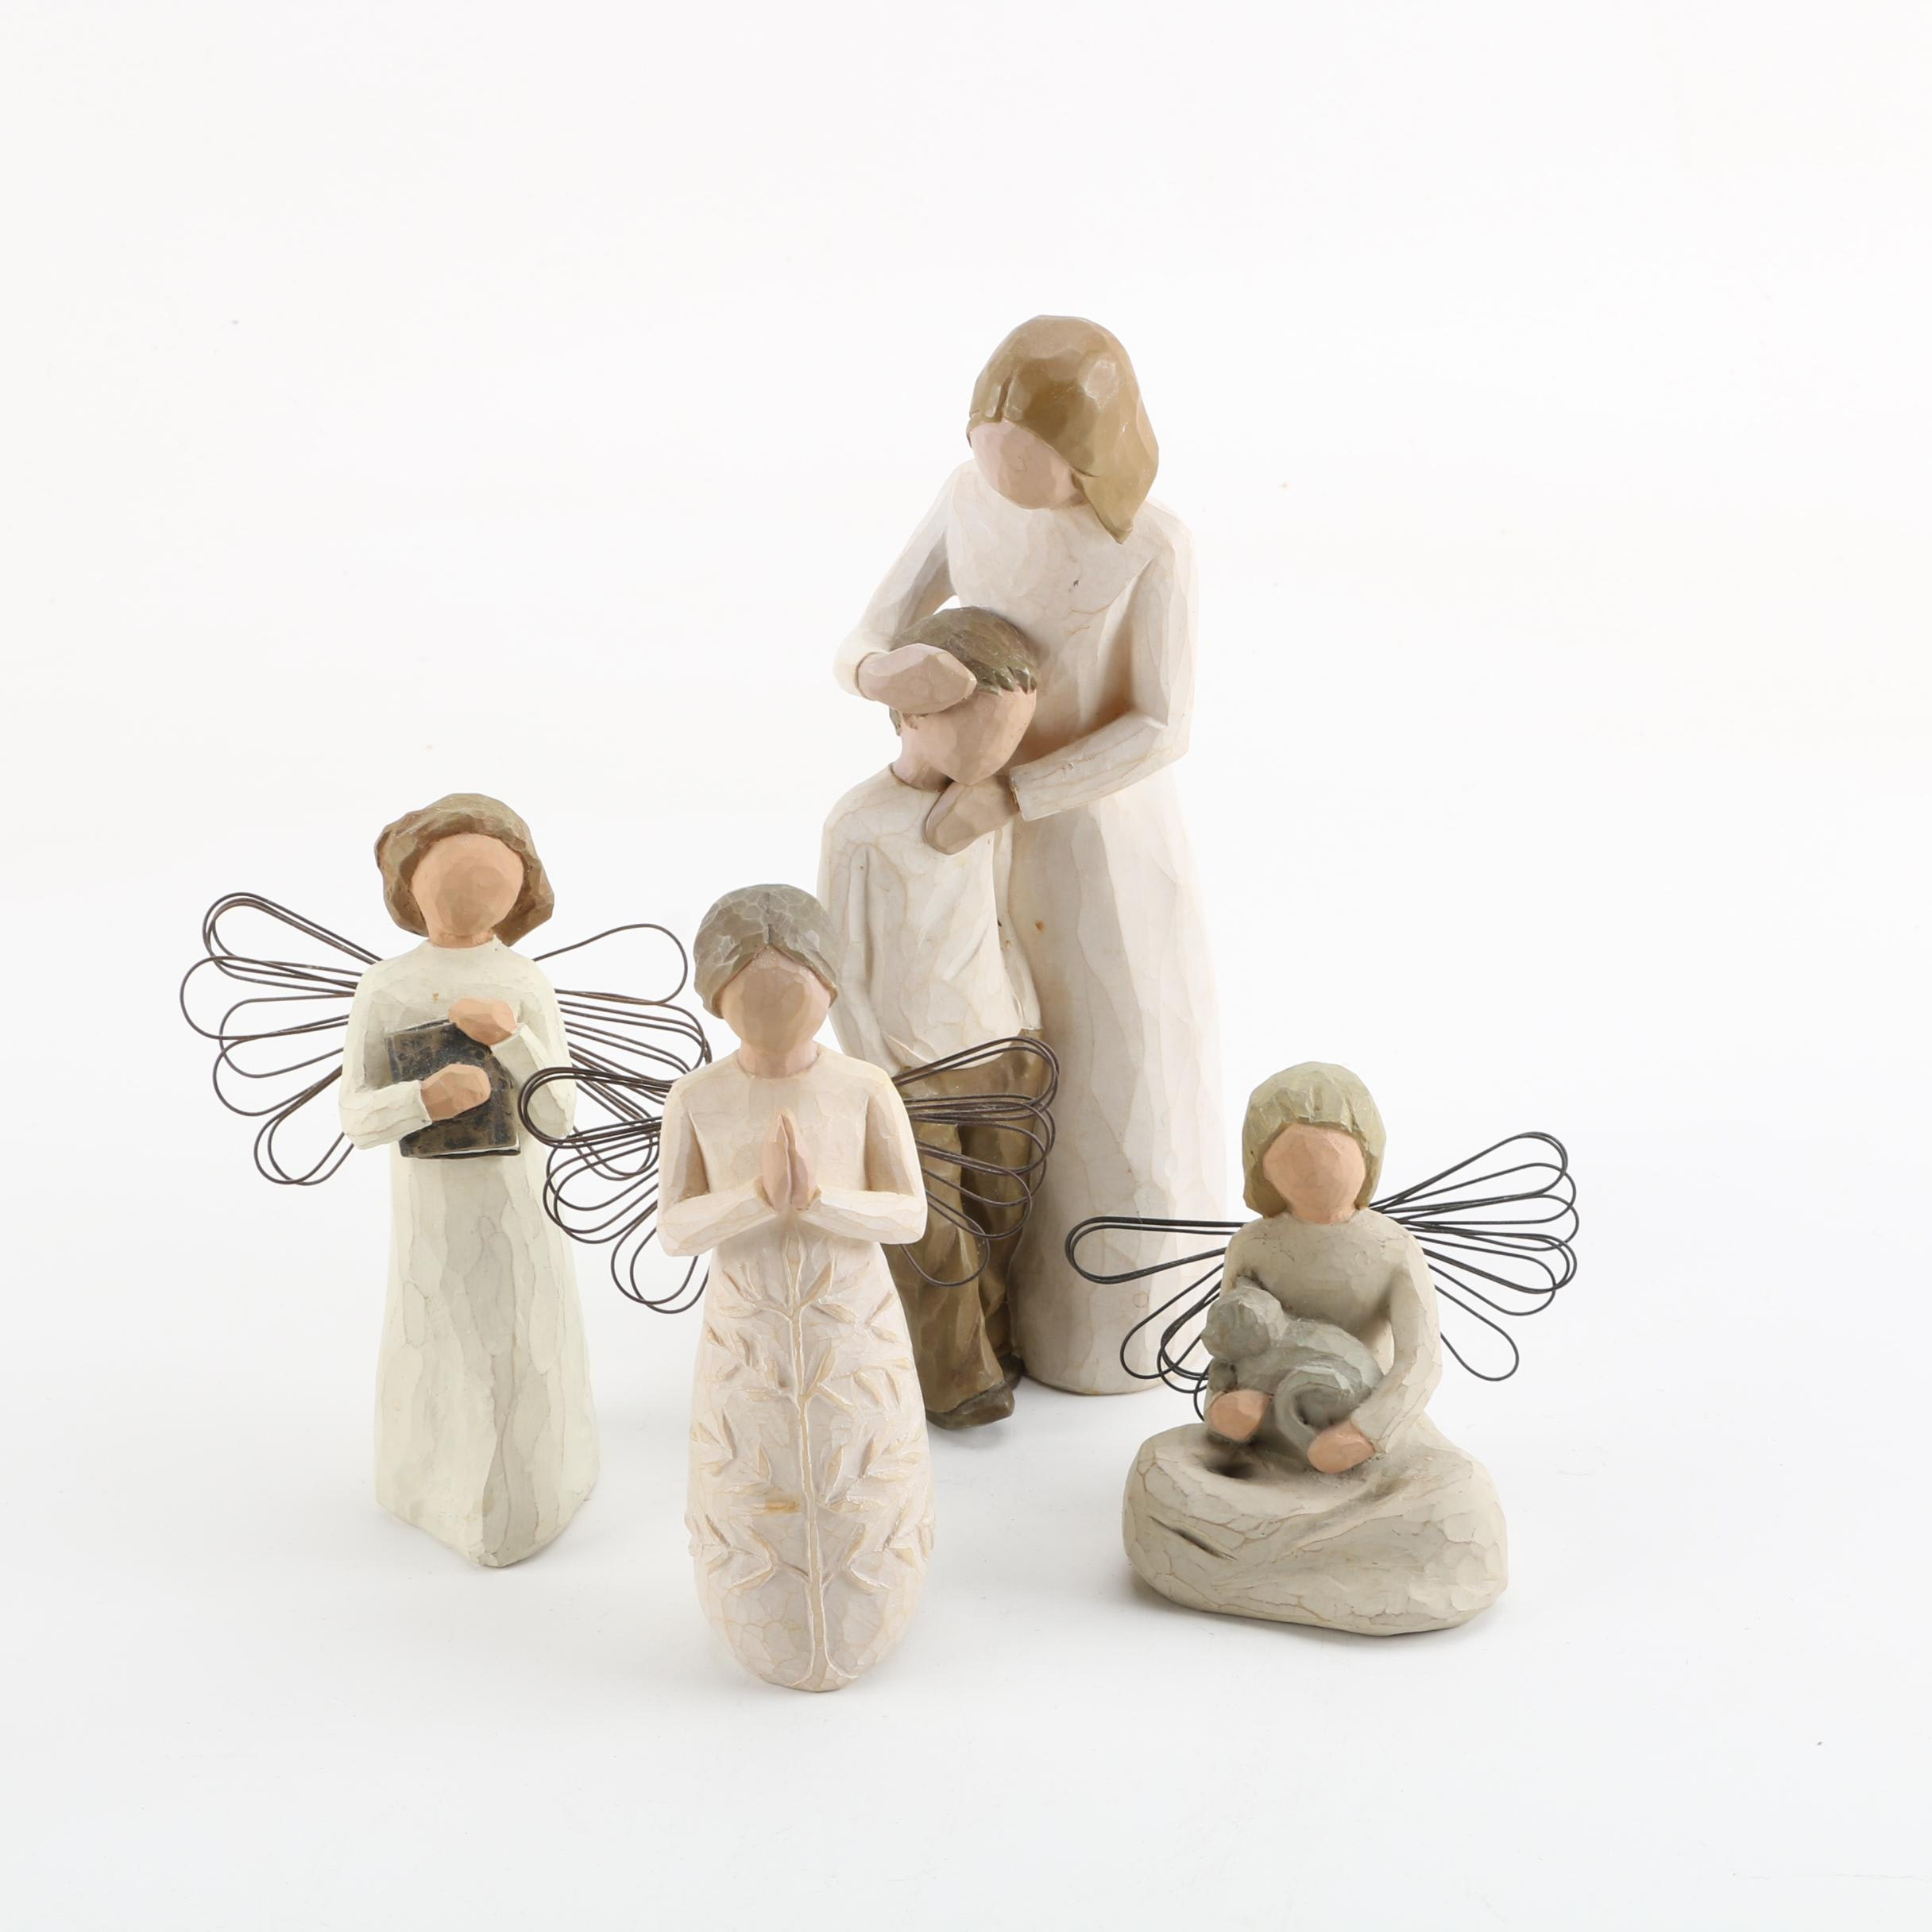 Willow Tree Figurines Designed by Susan Lordi